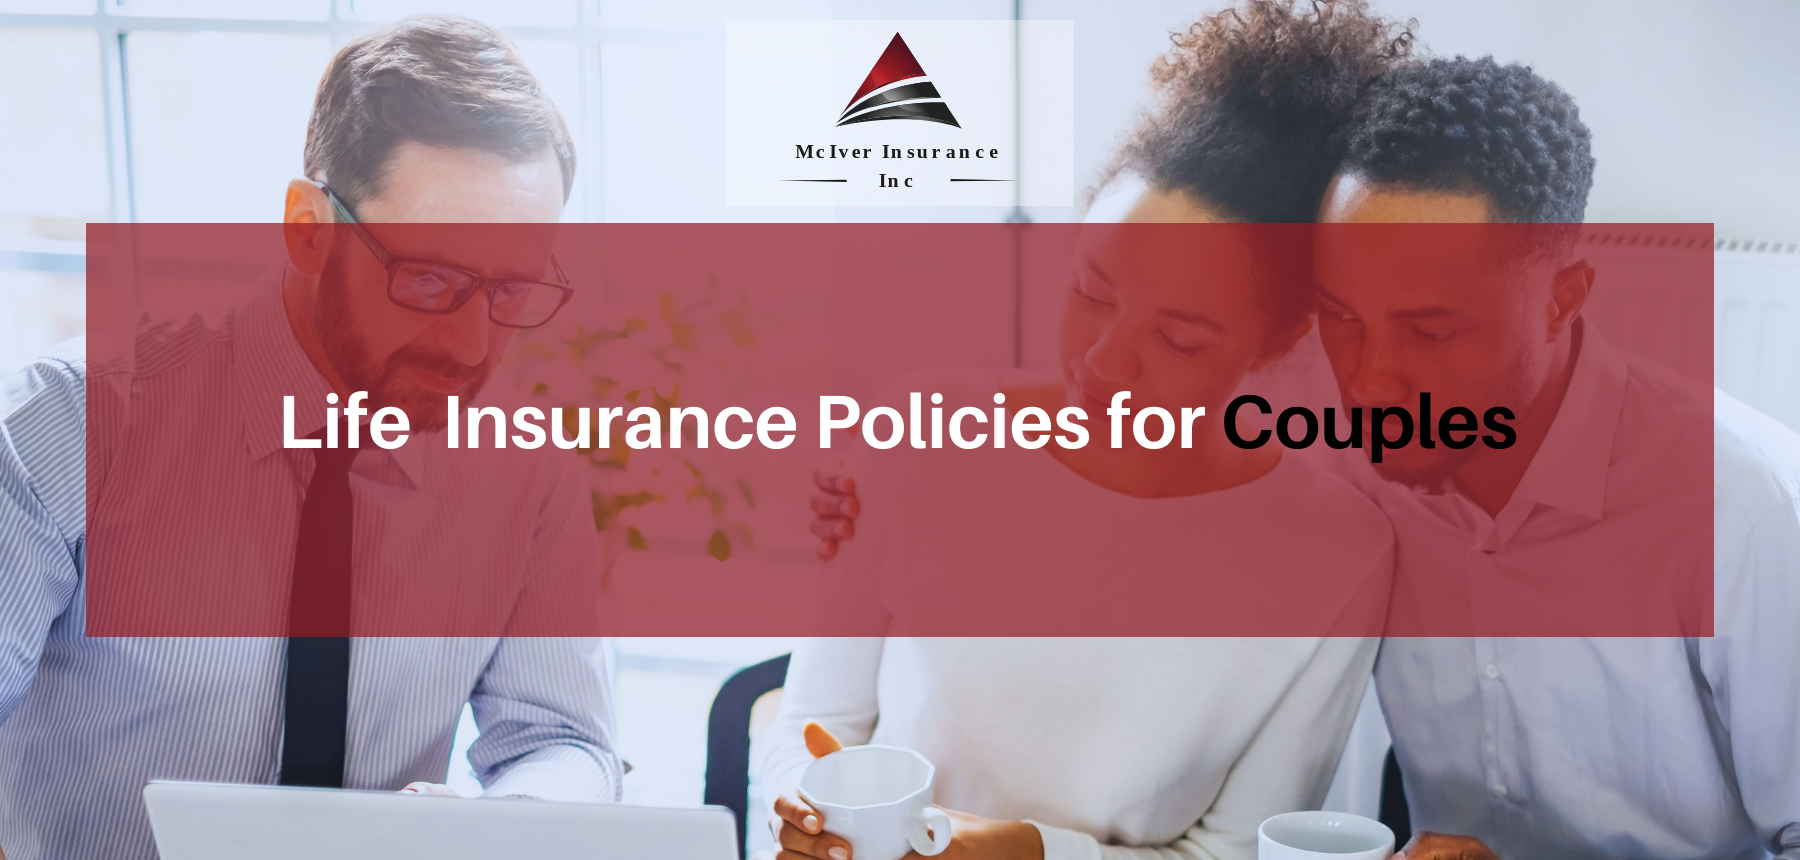 Life Insurance Policies for Couples